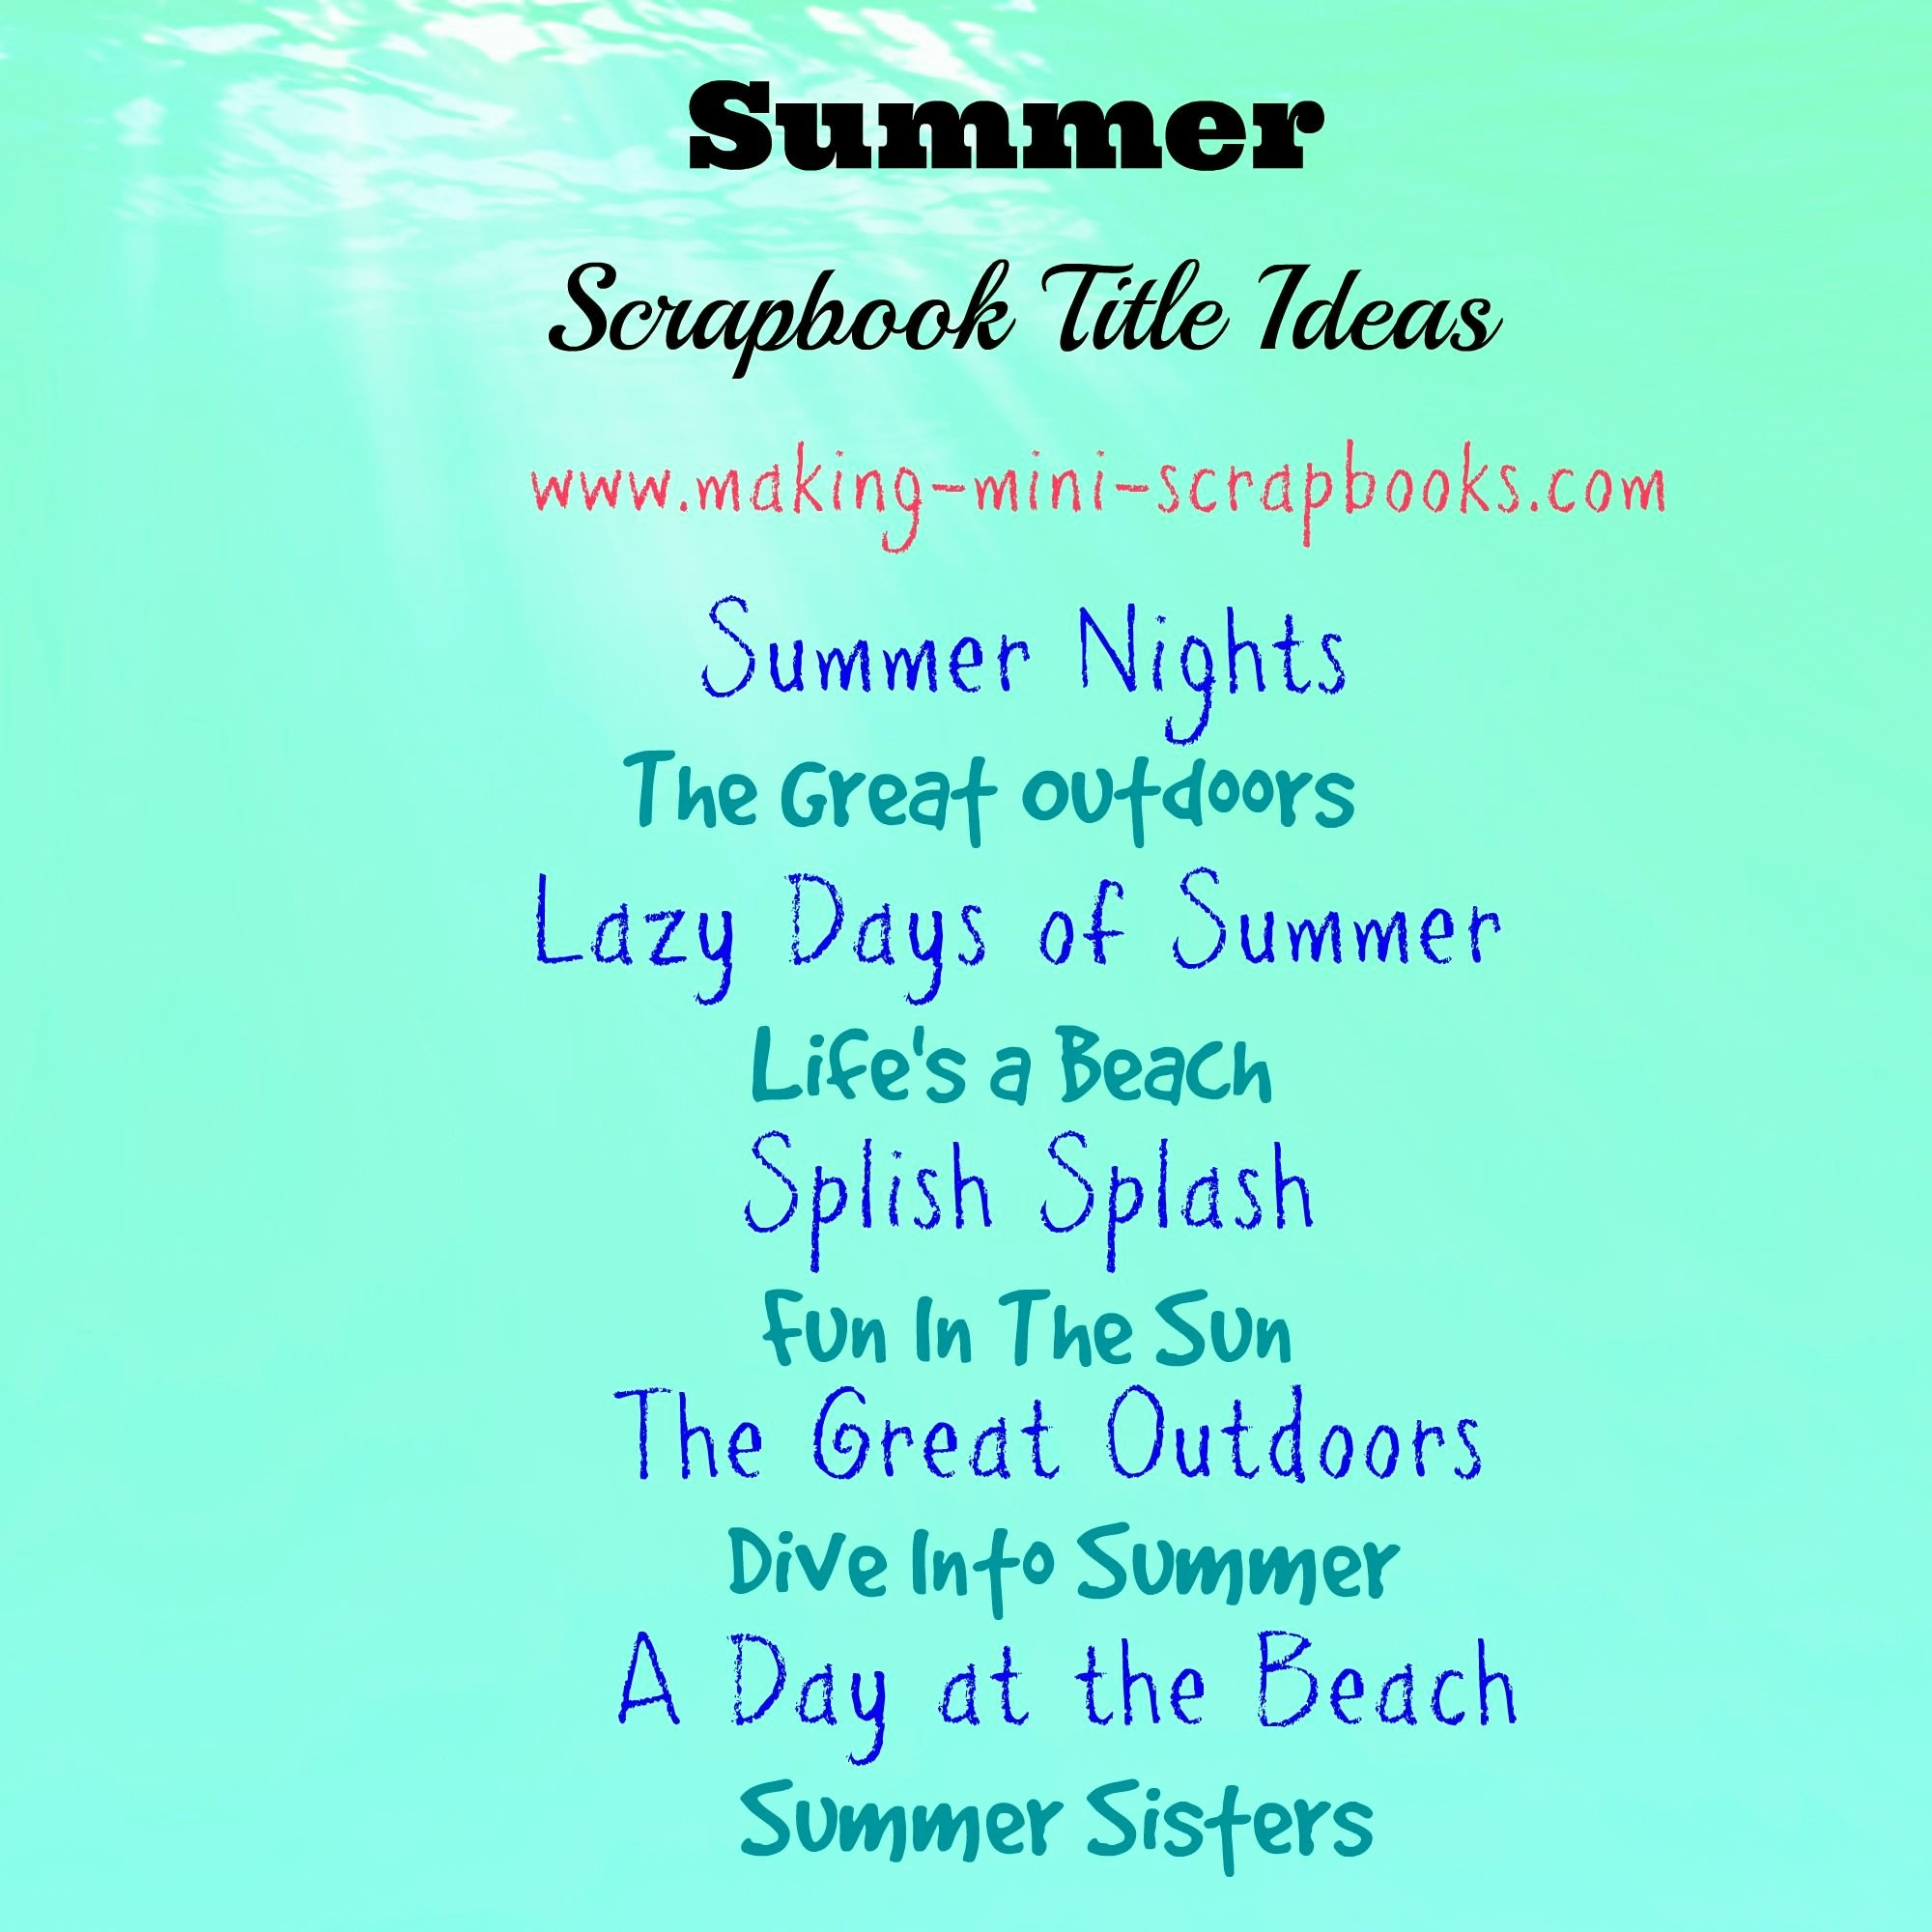 Album Title In Quotes Luxury some Summer Scrapbook Title Ideas